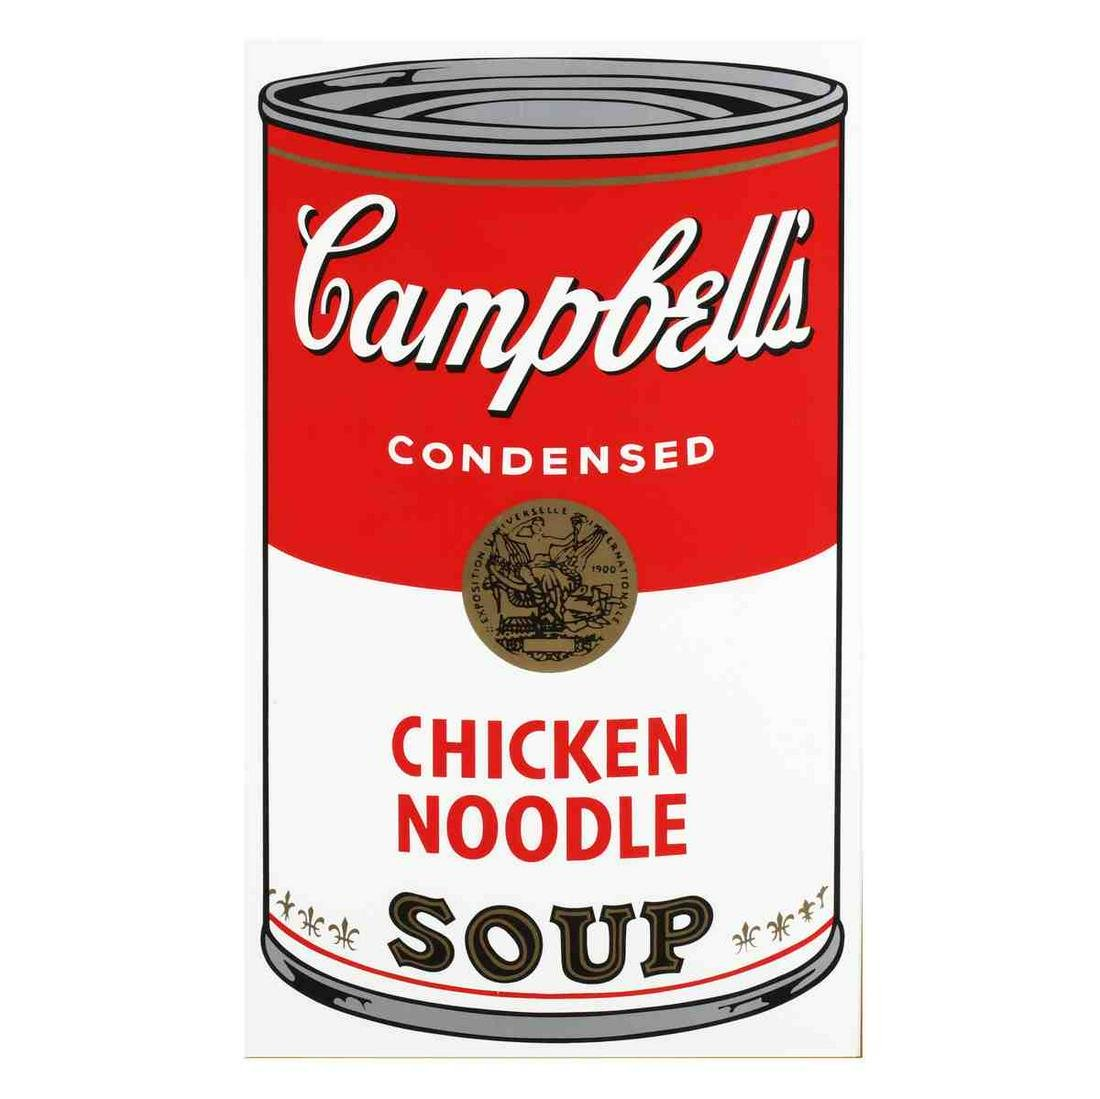 after Andy Warhol (American, 1928-1987),  Campbell's